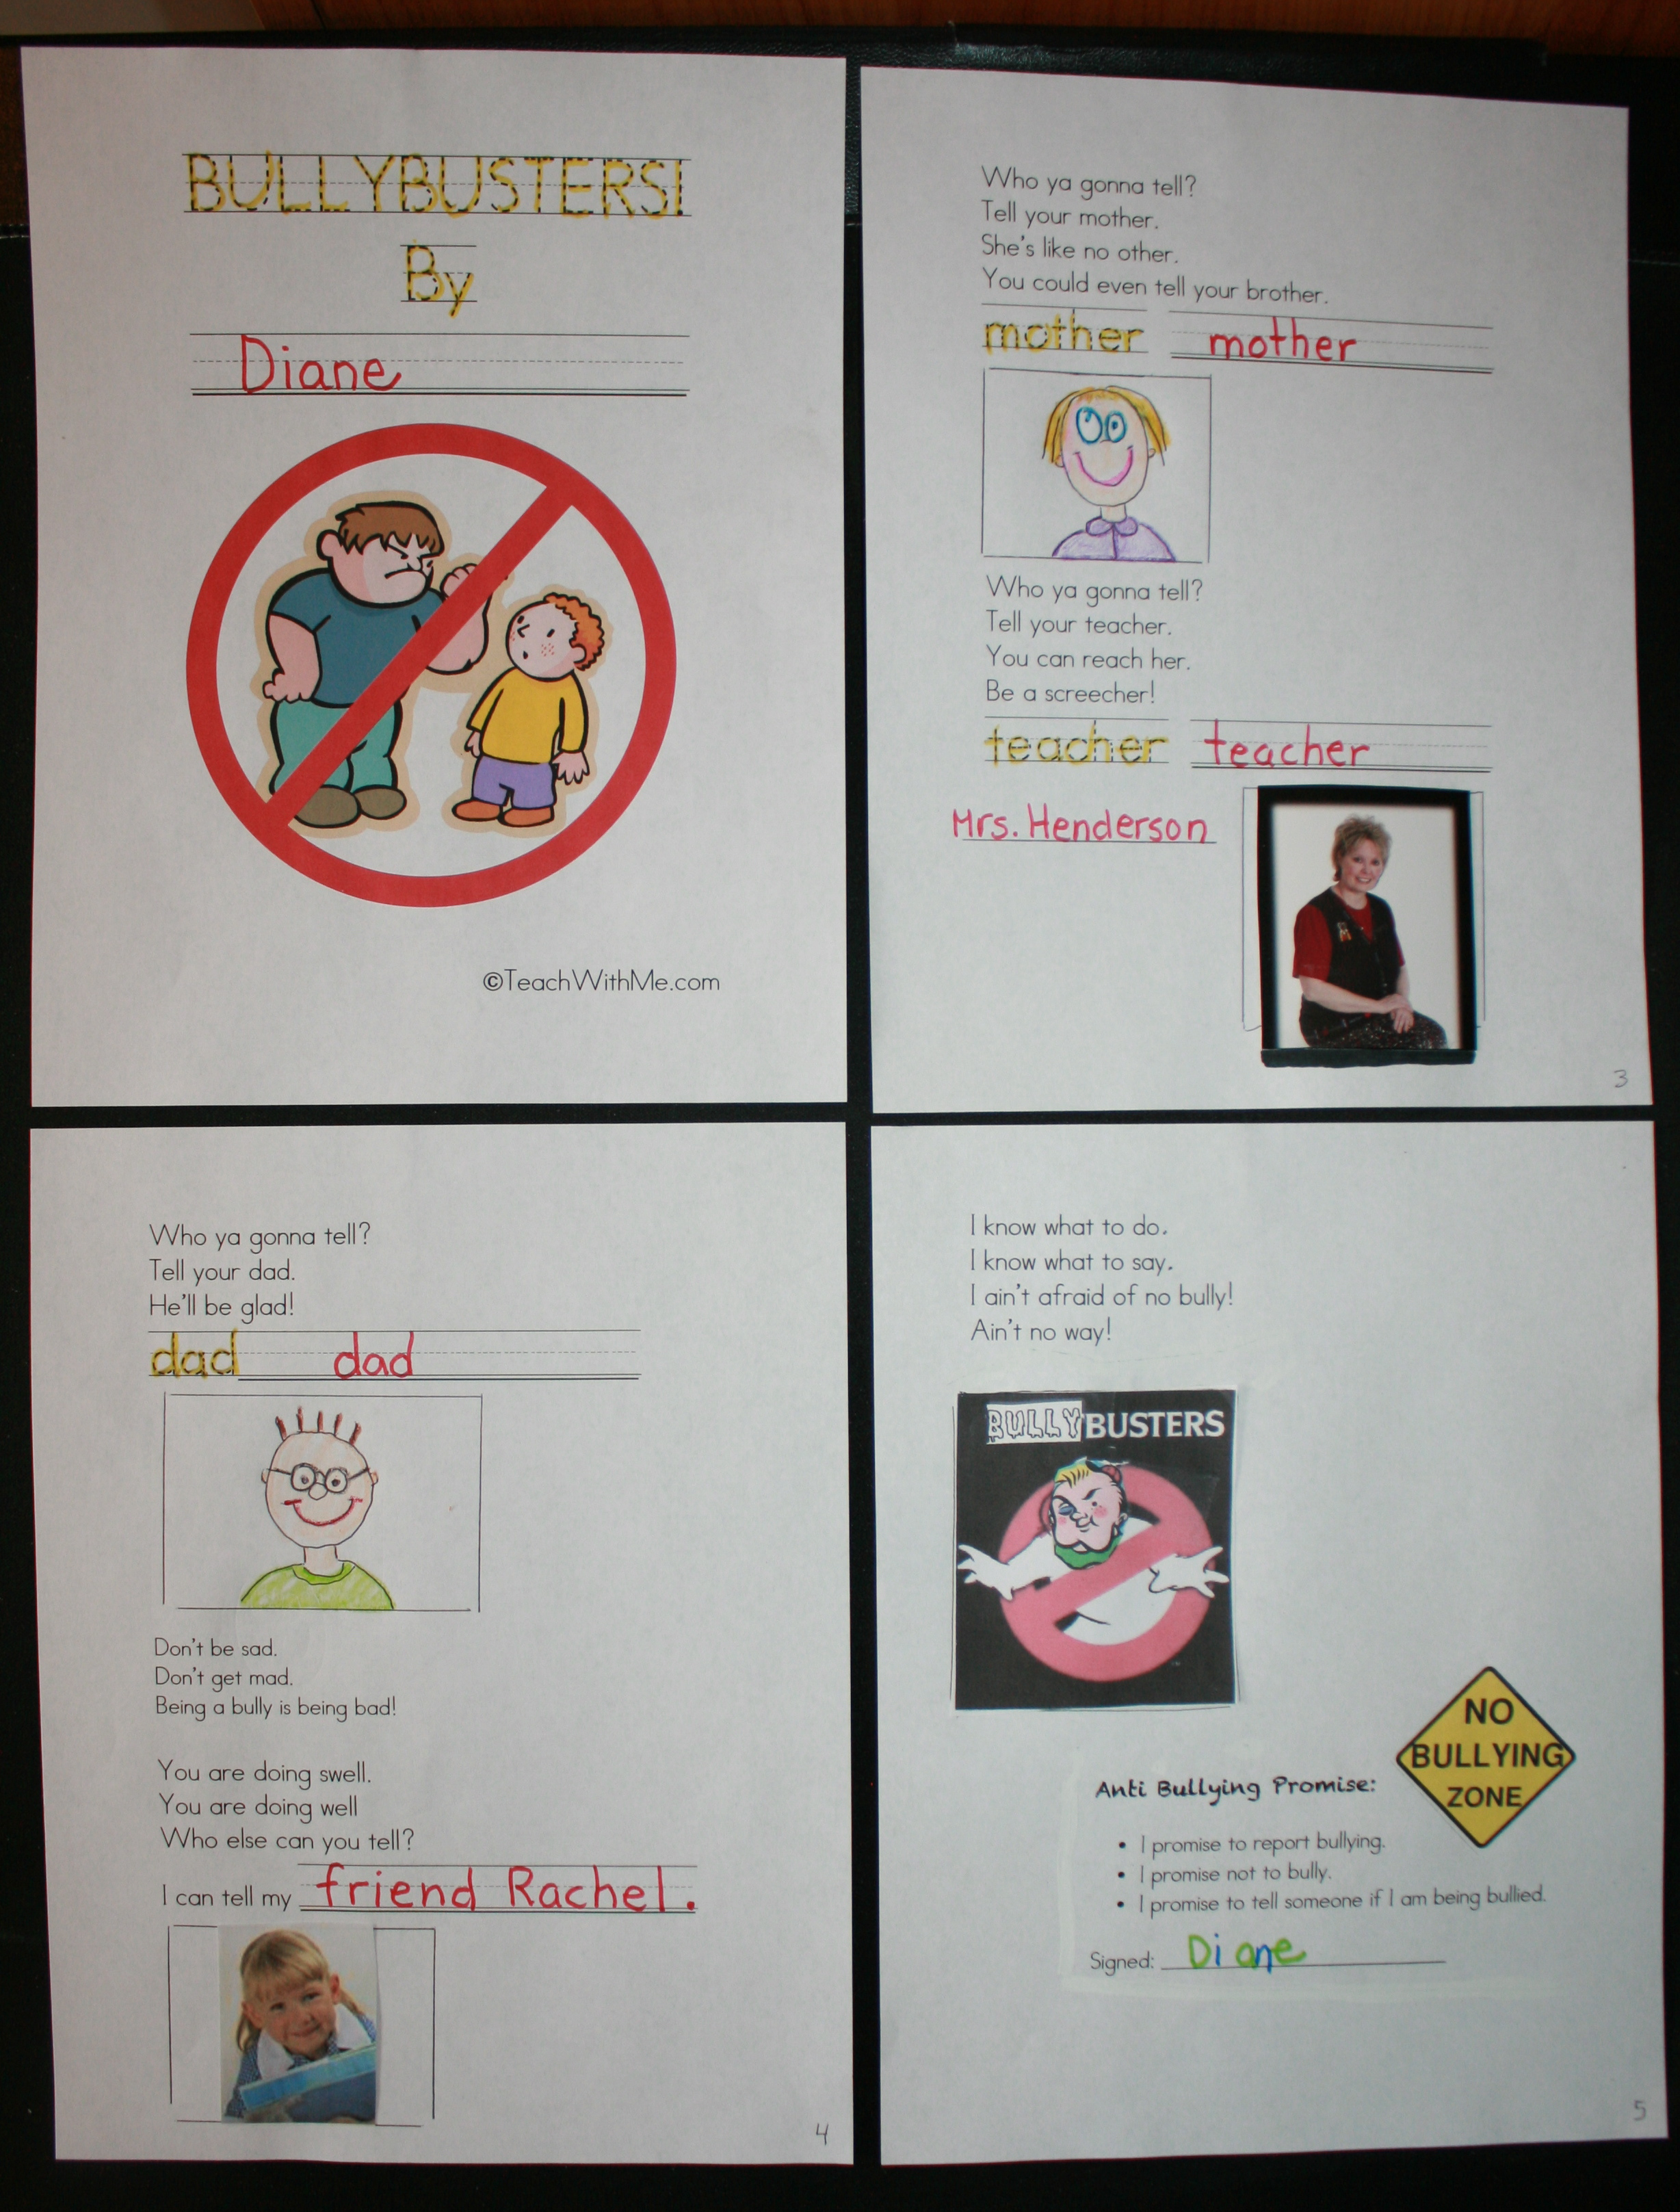 anti bullying activities, no bullying booklet, no bullying activities, bullying activities, bullying booklet, activities about bullying, bully free school zone, no bullying posters, anti-bullying posters, bully free school zone posters, no cyber bullying activities,